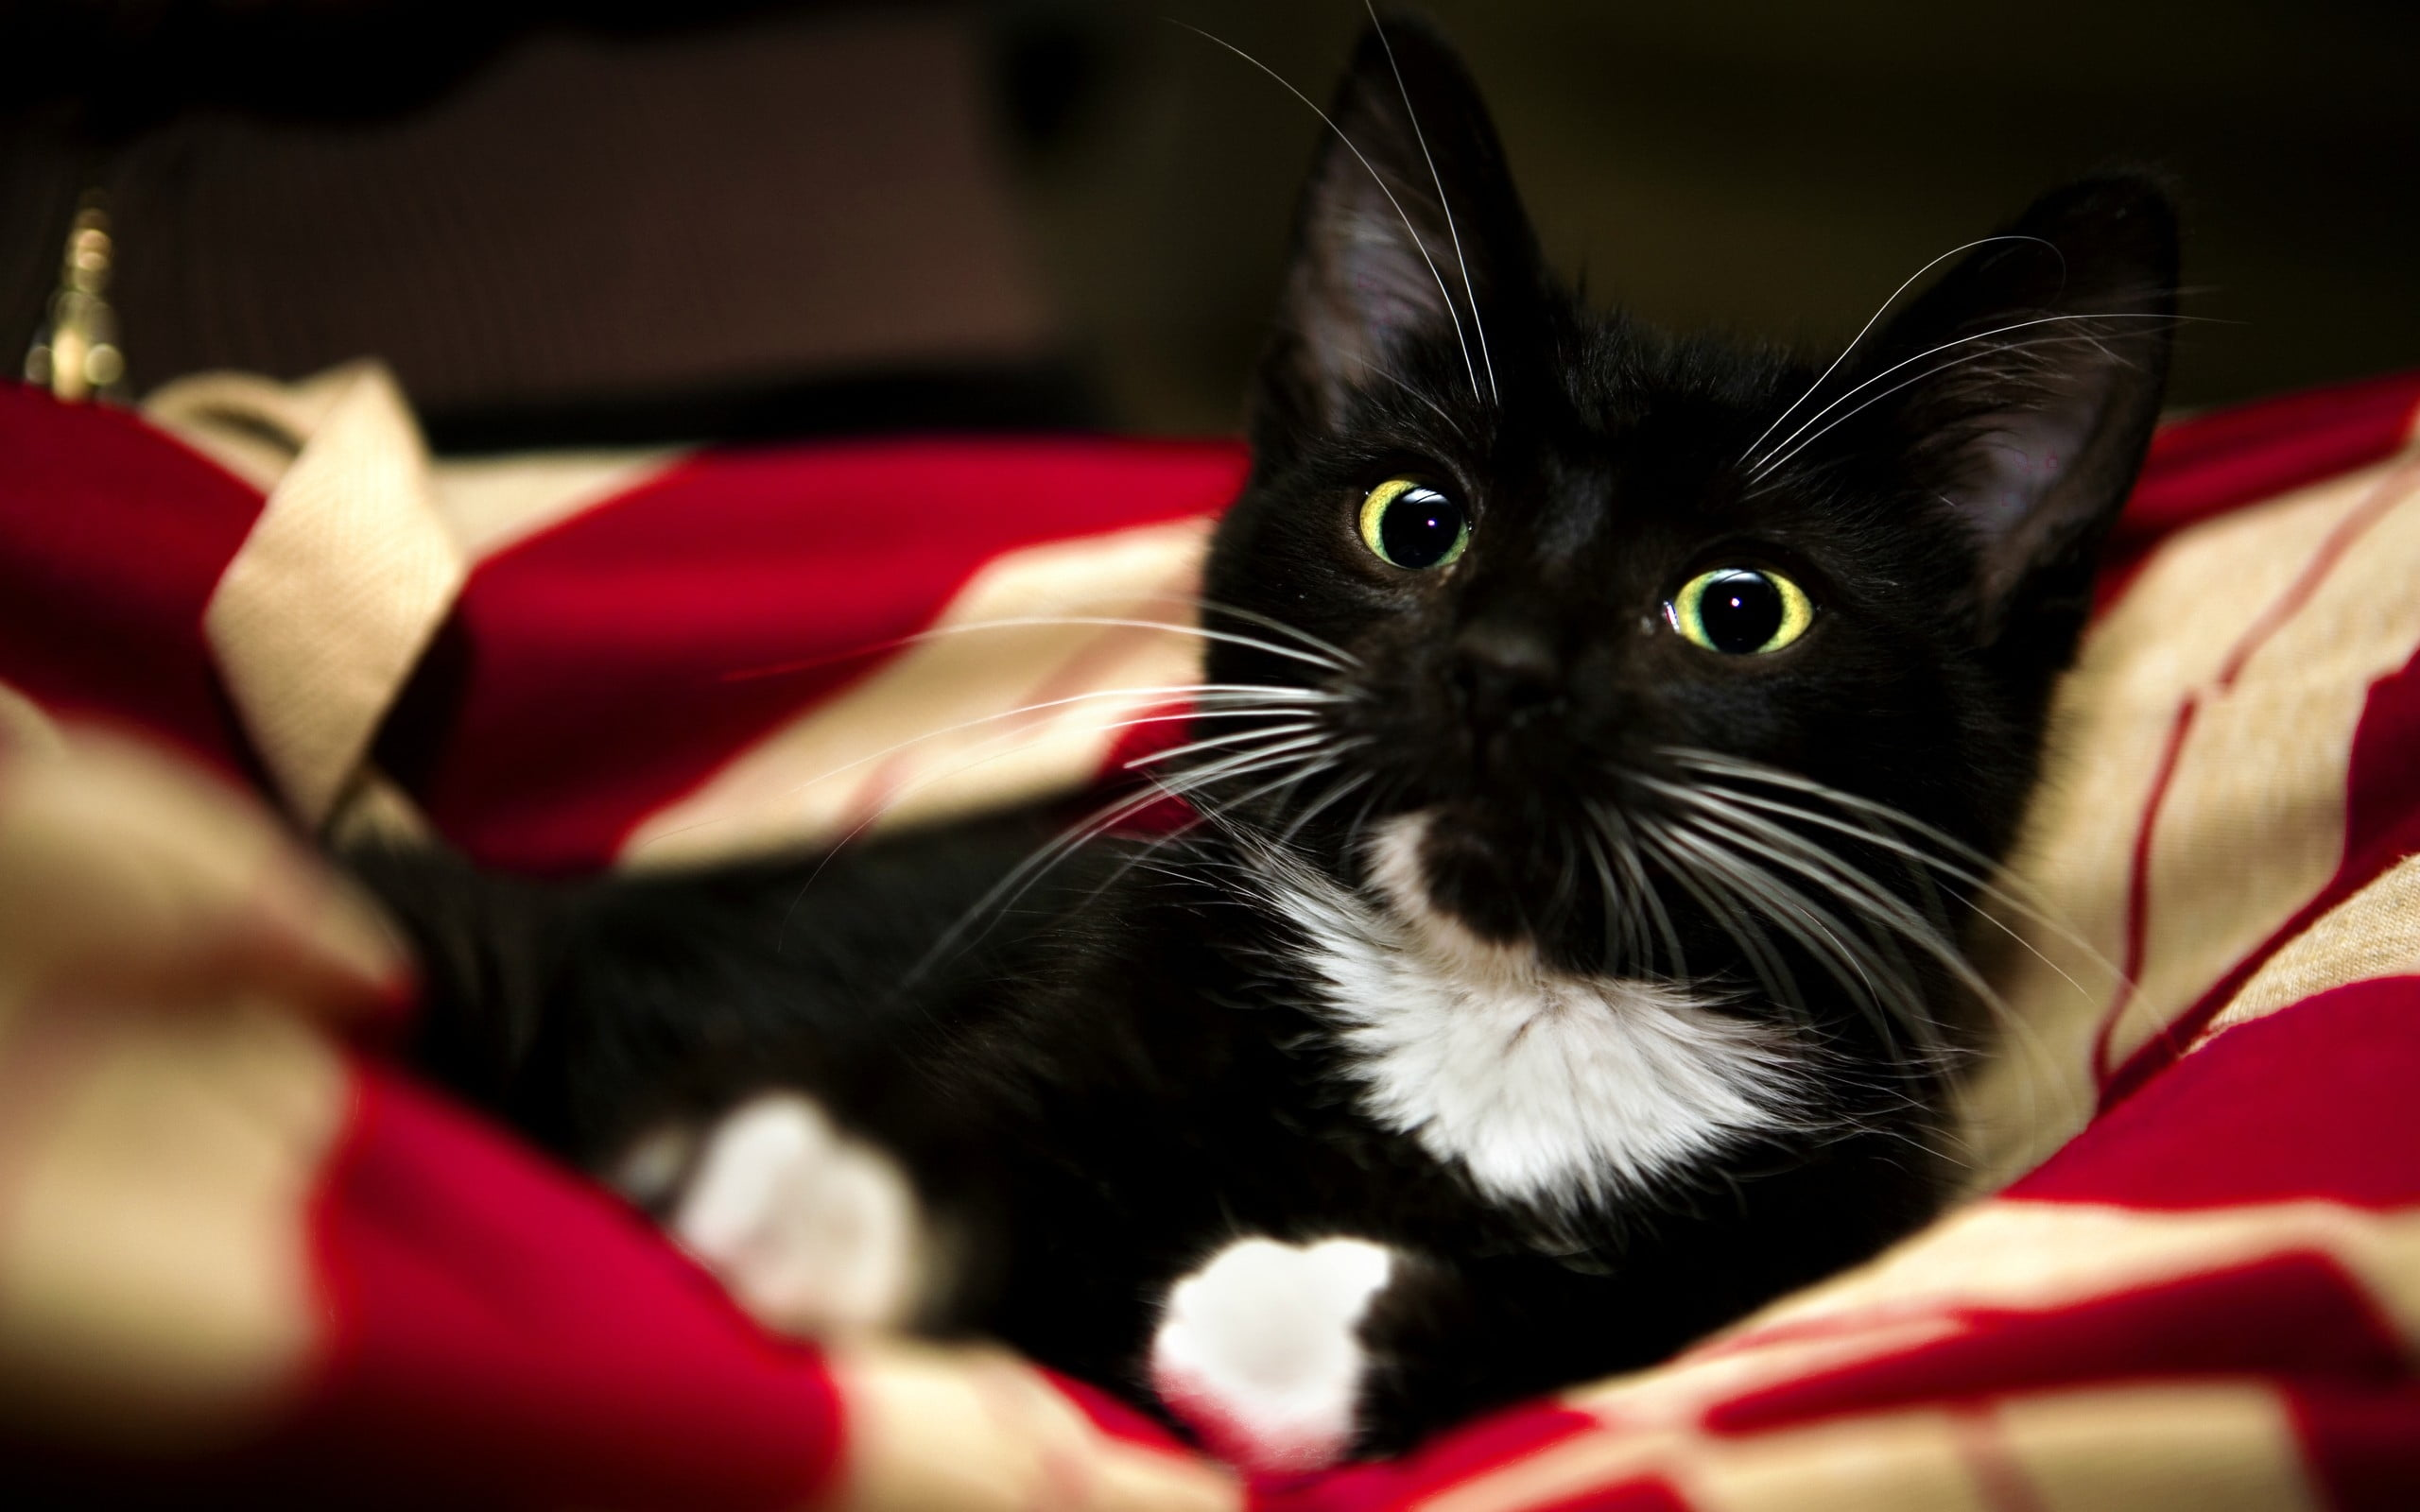 Tuxedo cat HD wallpaper Wallpaper Flare 2560x1600